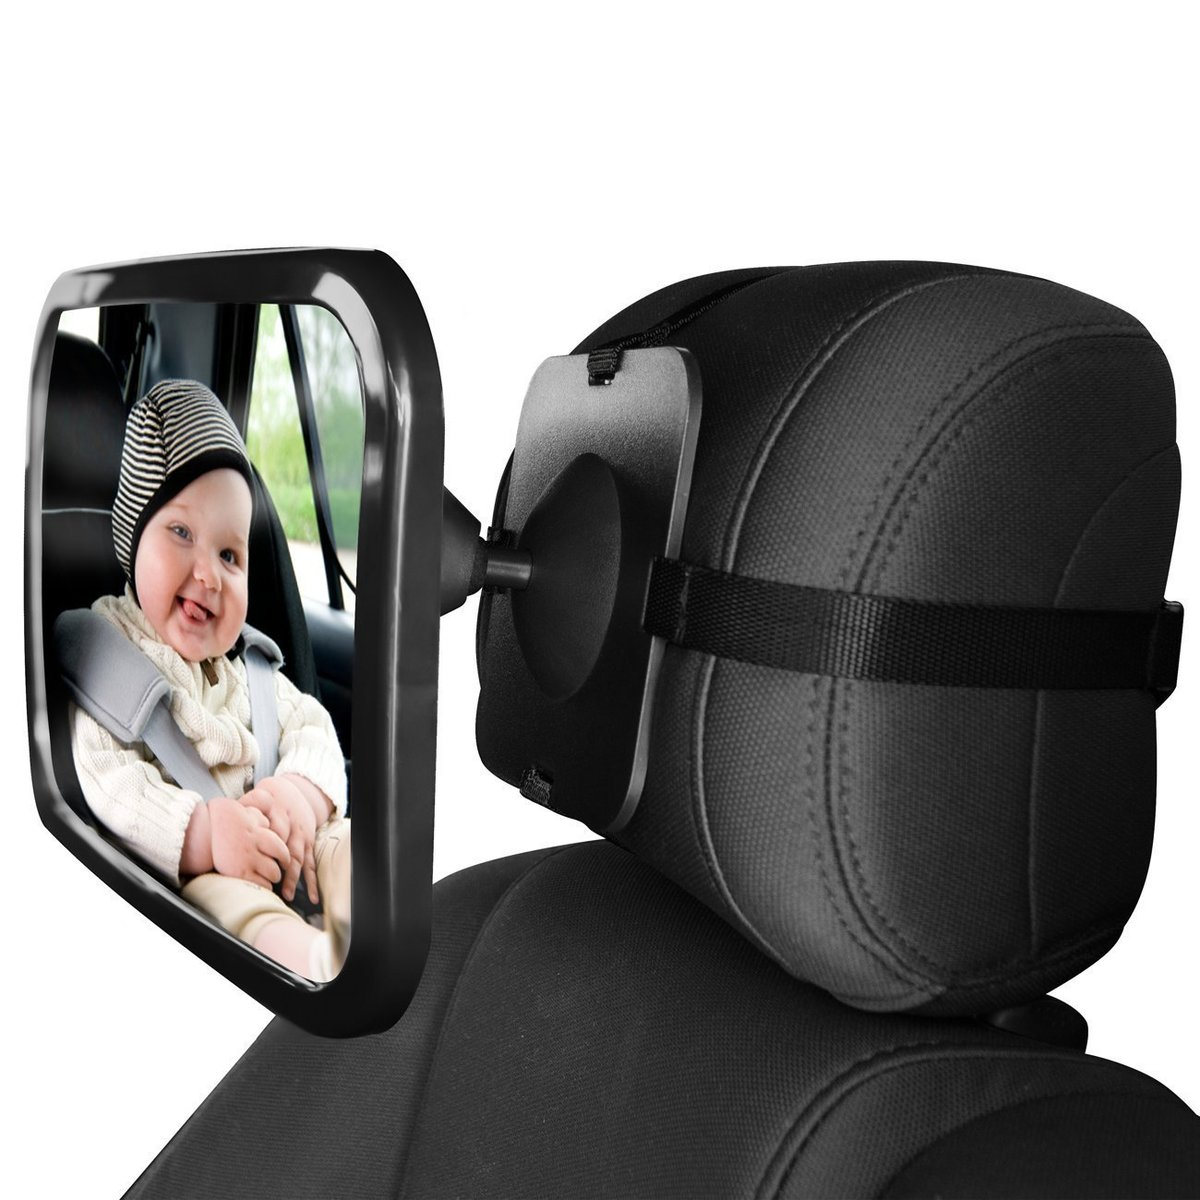 OHANEE Adjustable Wide Car back Seat View Mirror Baby Child Seat Car Safety Mirror Monitor Headrest High Quality Car Interior